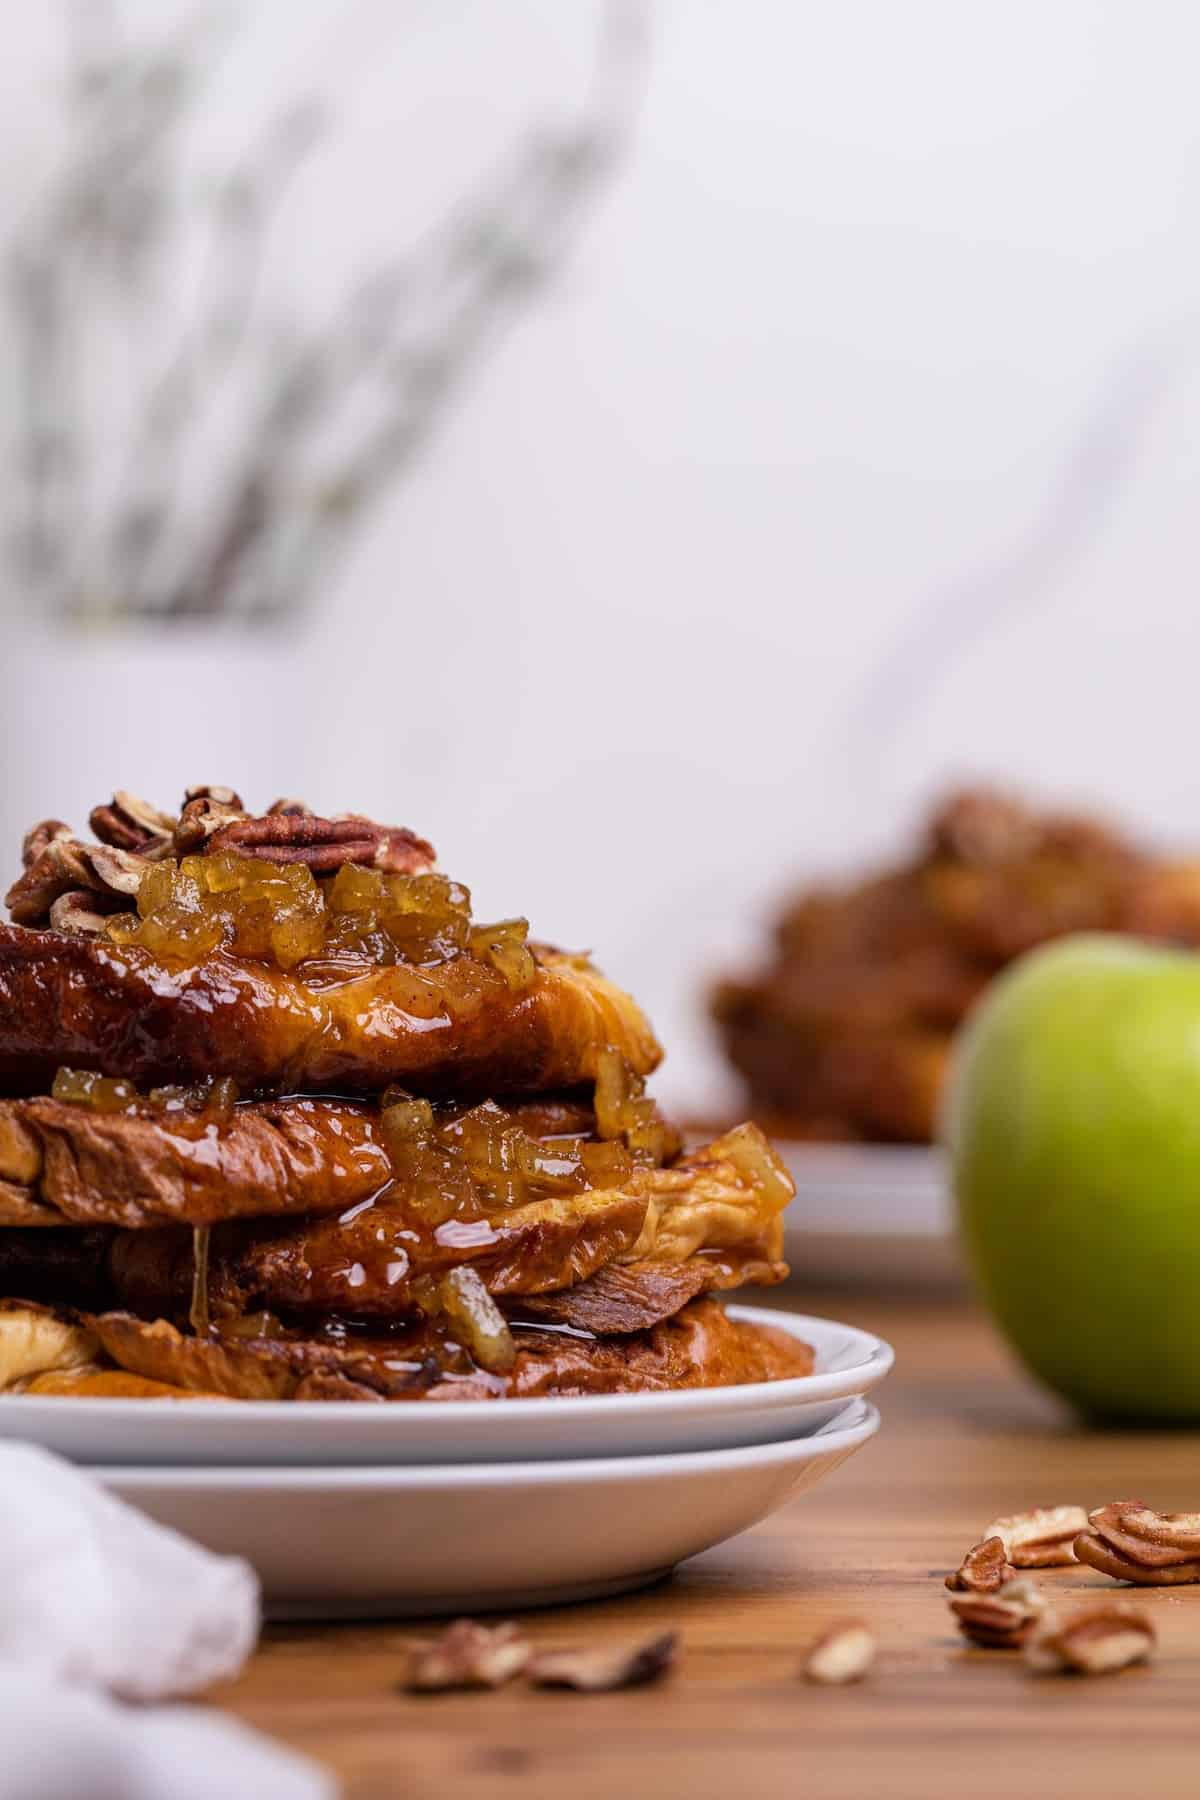 Caramelized Apple French Toast slices on two white plates with a green apple on the side